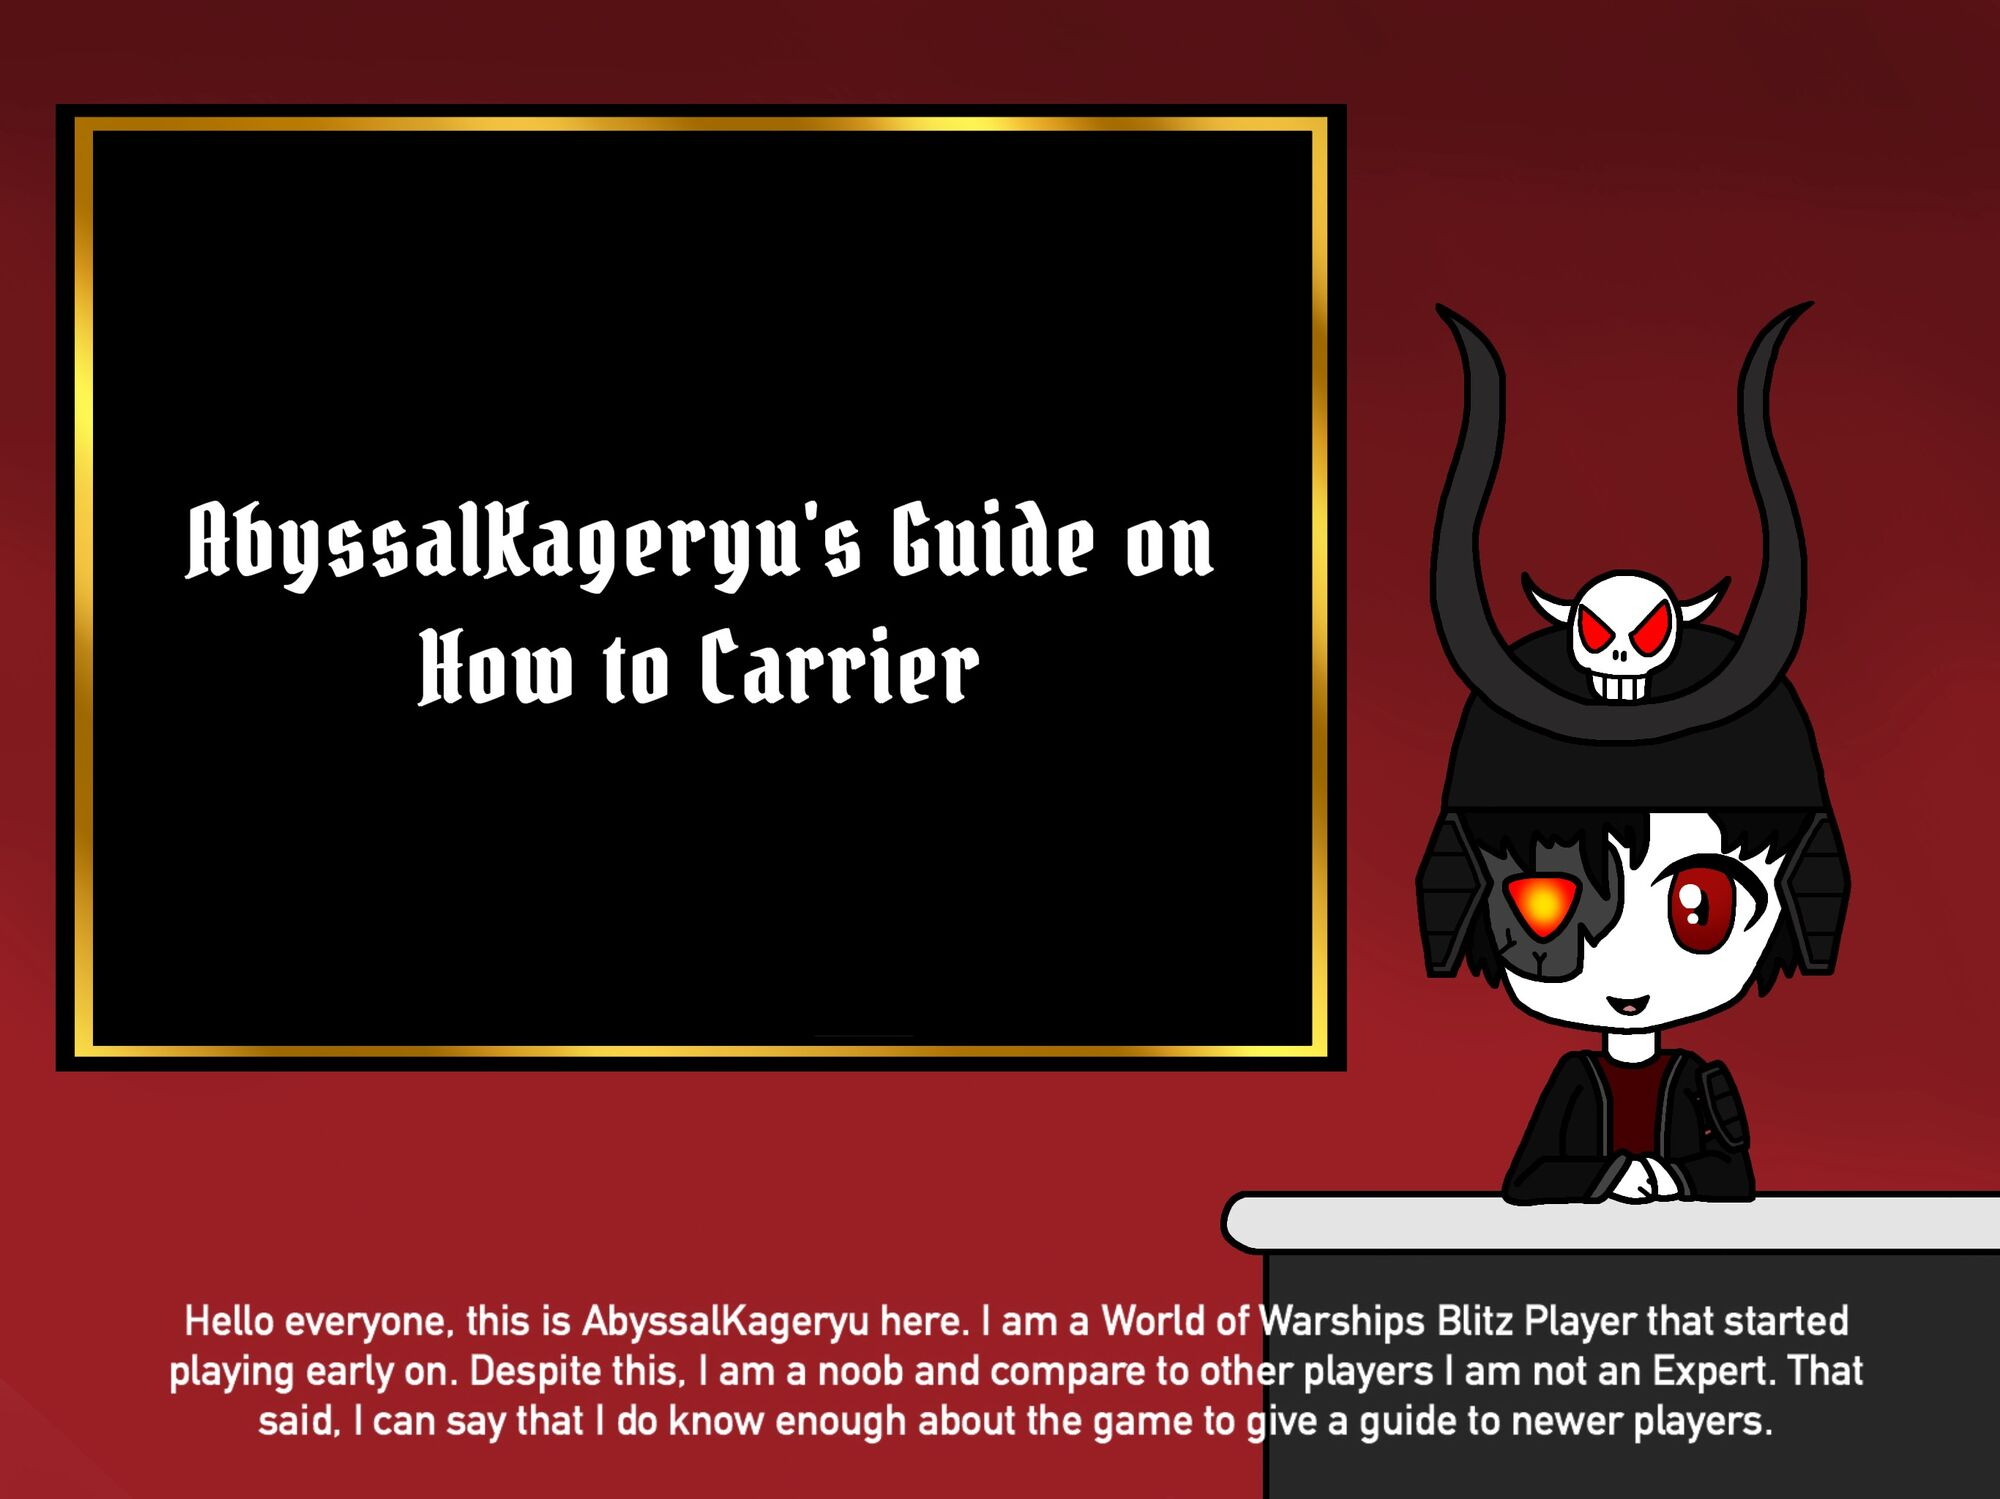 User blog:Void Samukai/AbyssalKageryu's Guide on How to Carrier